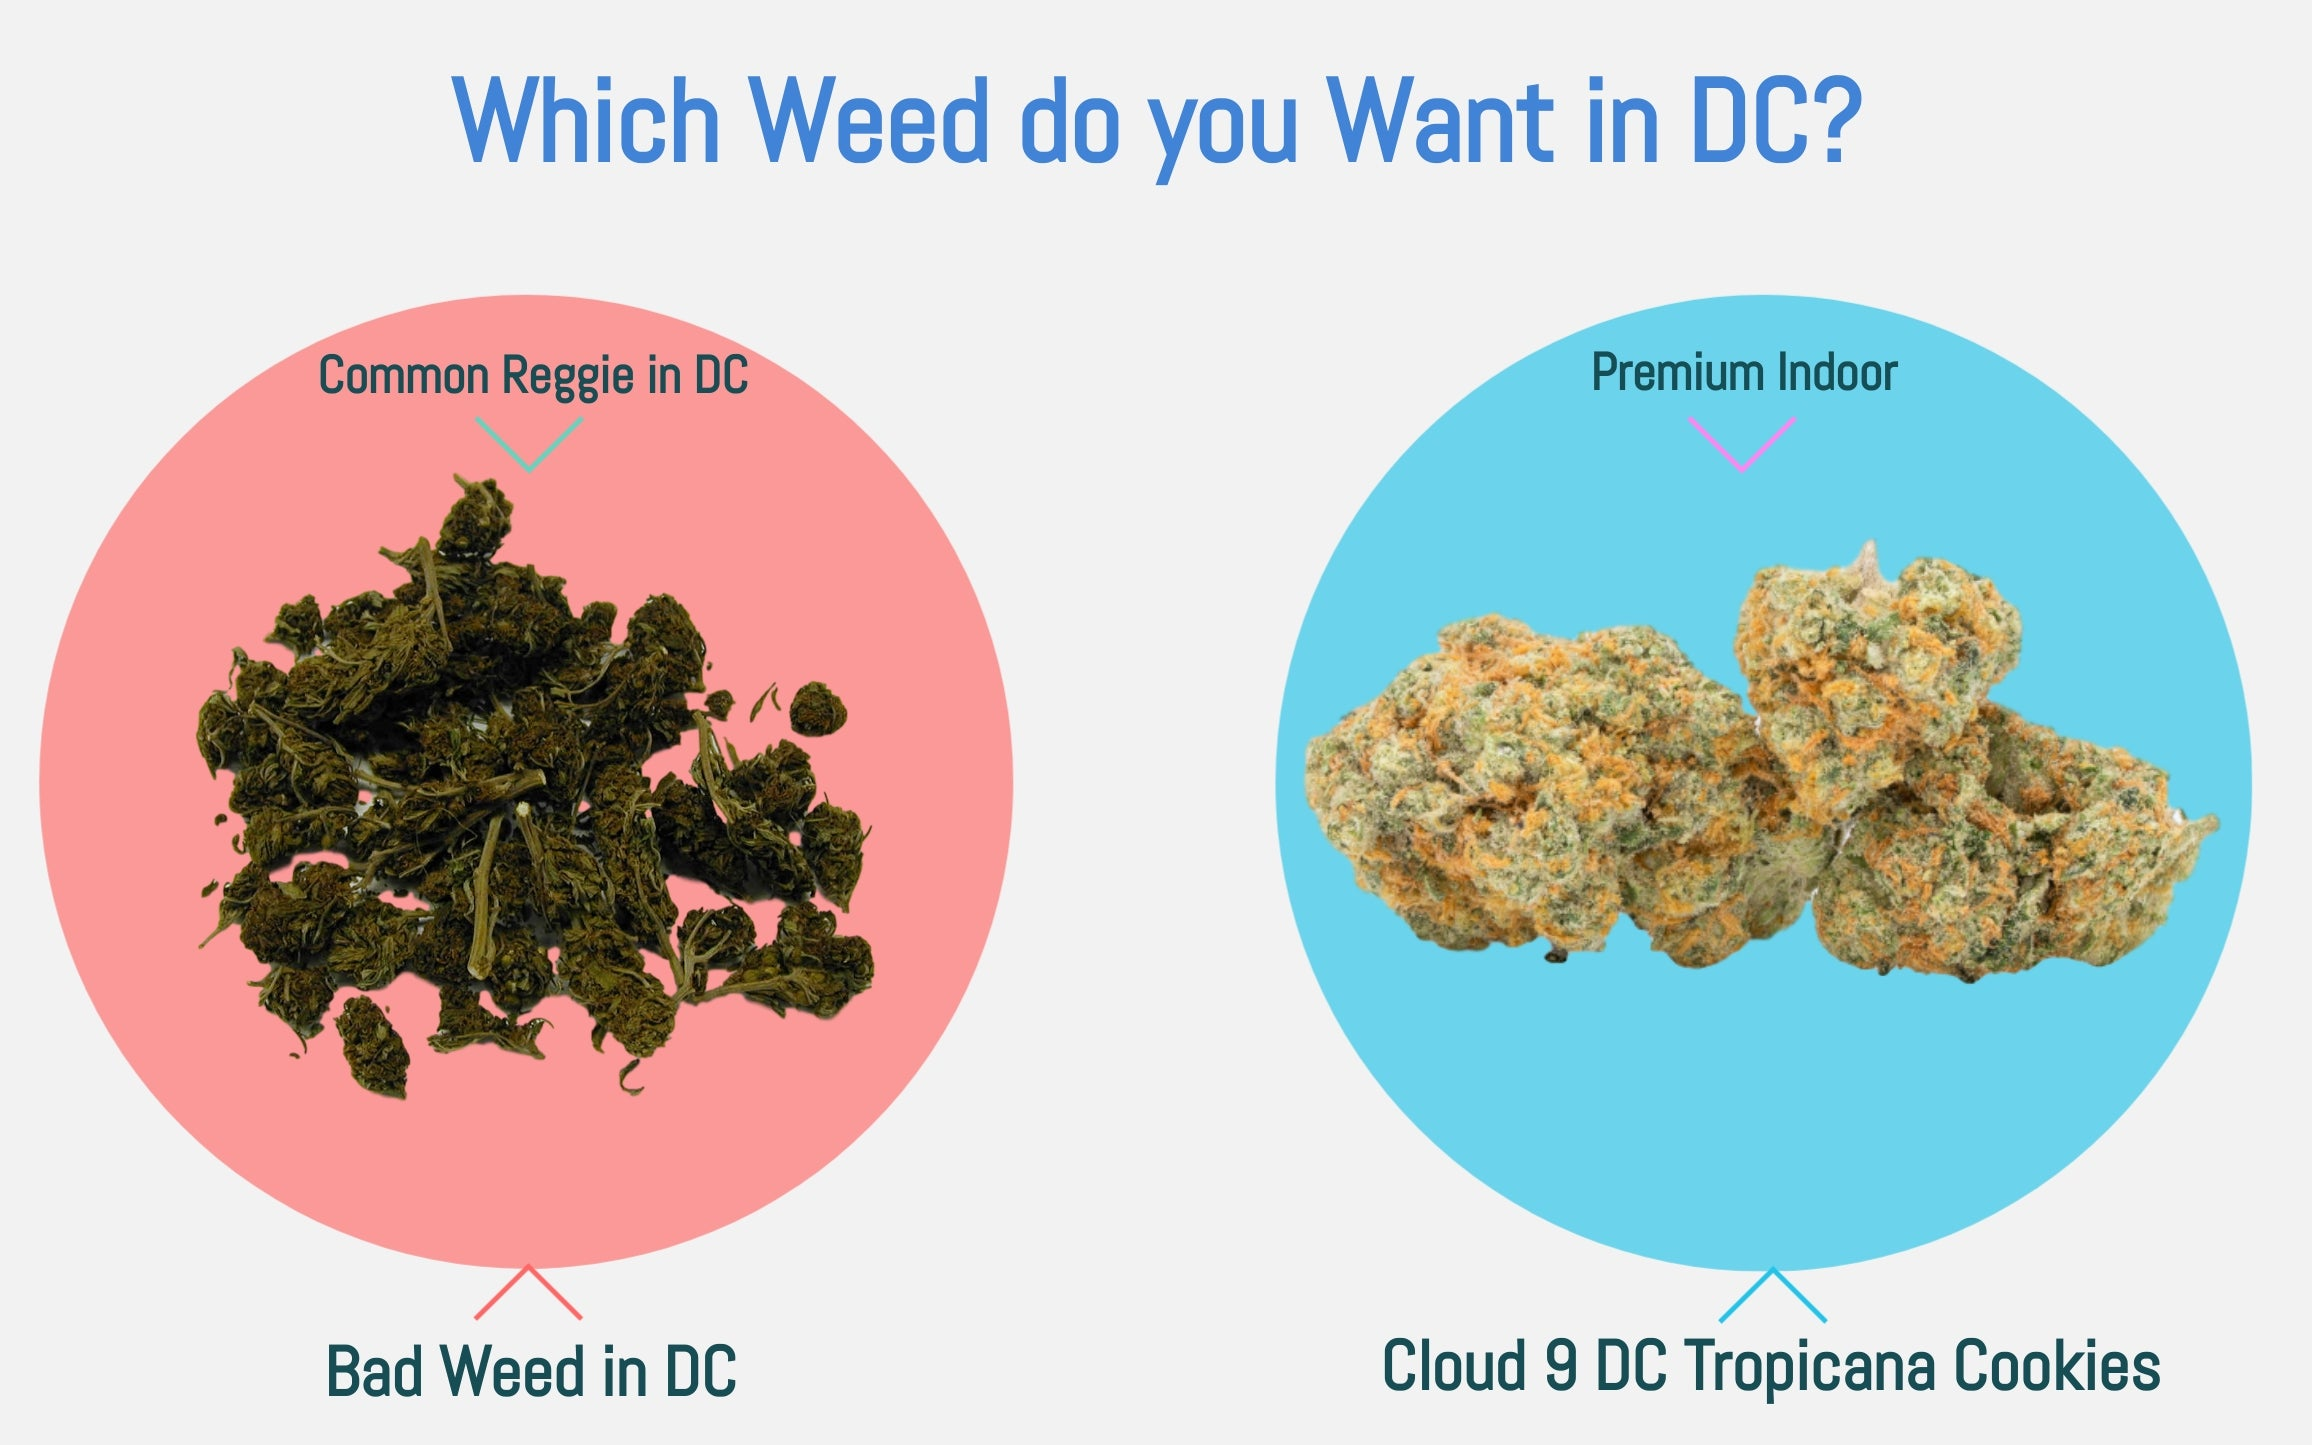 Good or bad weed in DC?